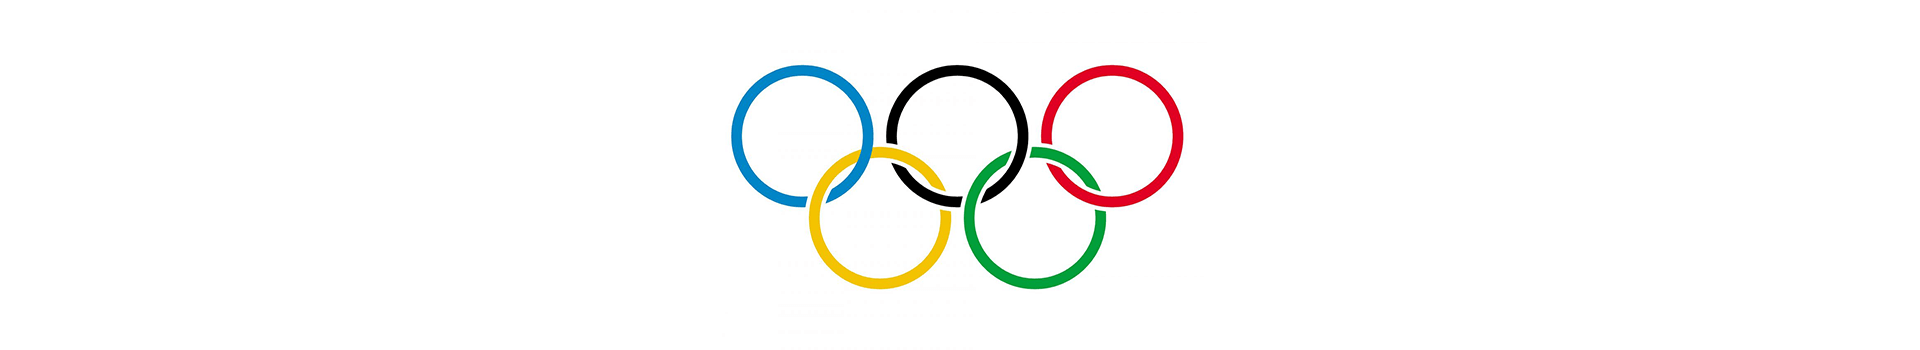 Olympic betting tips forum binary options for beginners 2021 calendar